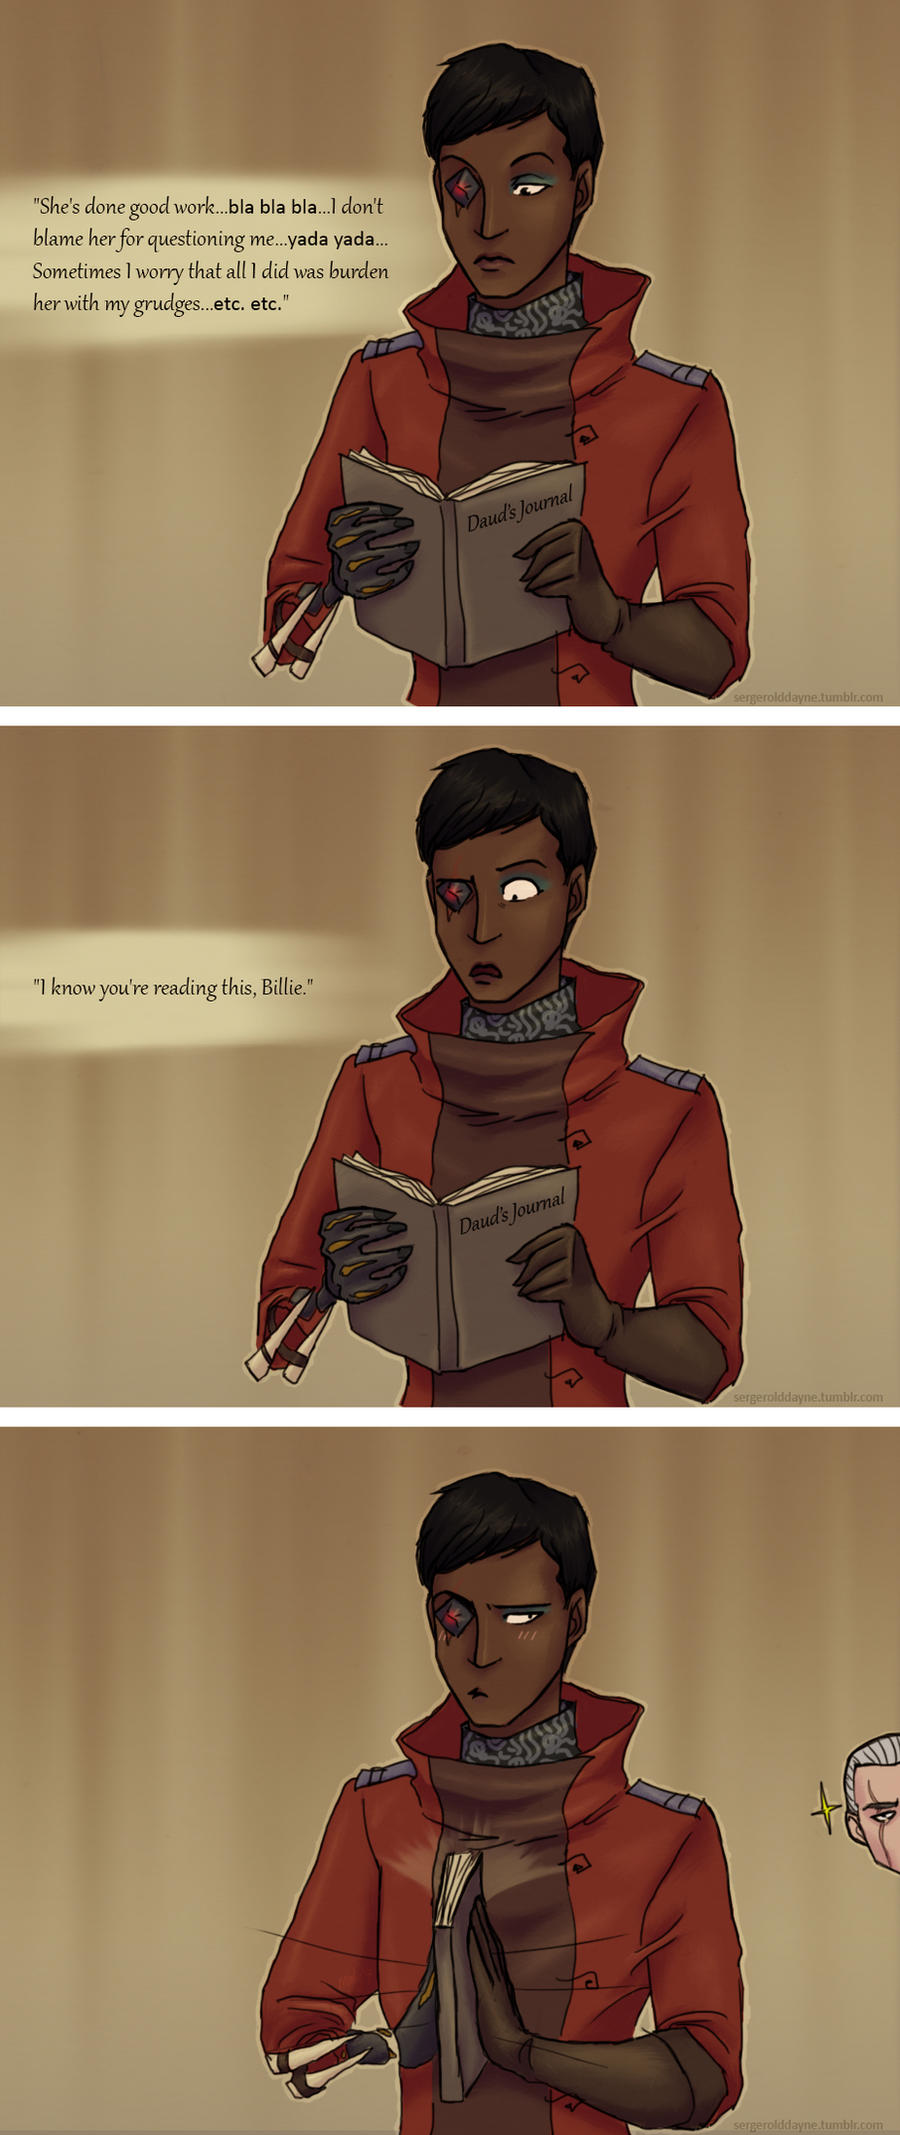 Daud's Journal by lady-voldything